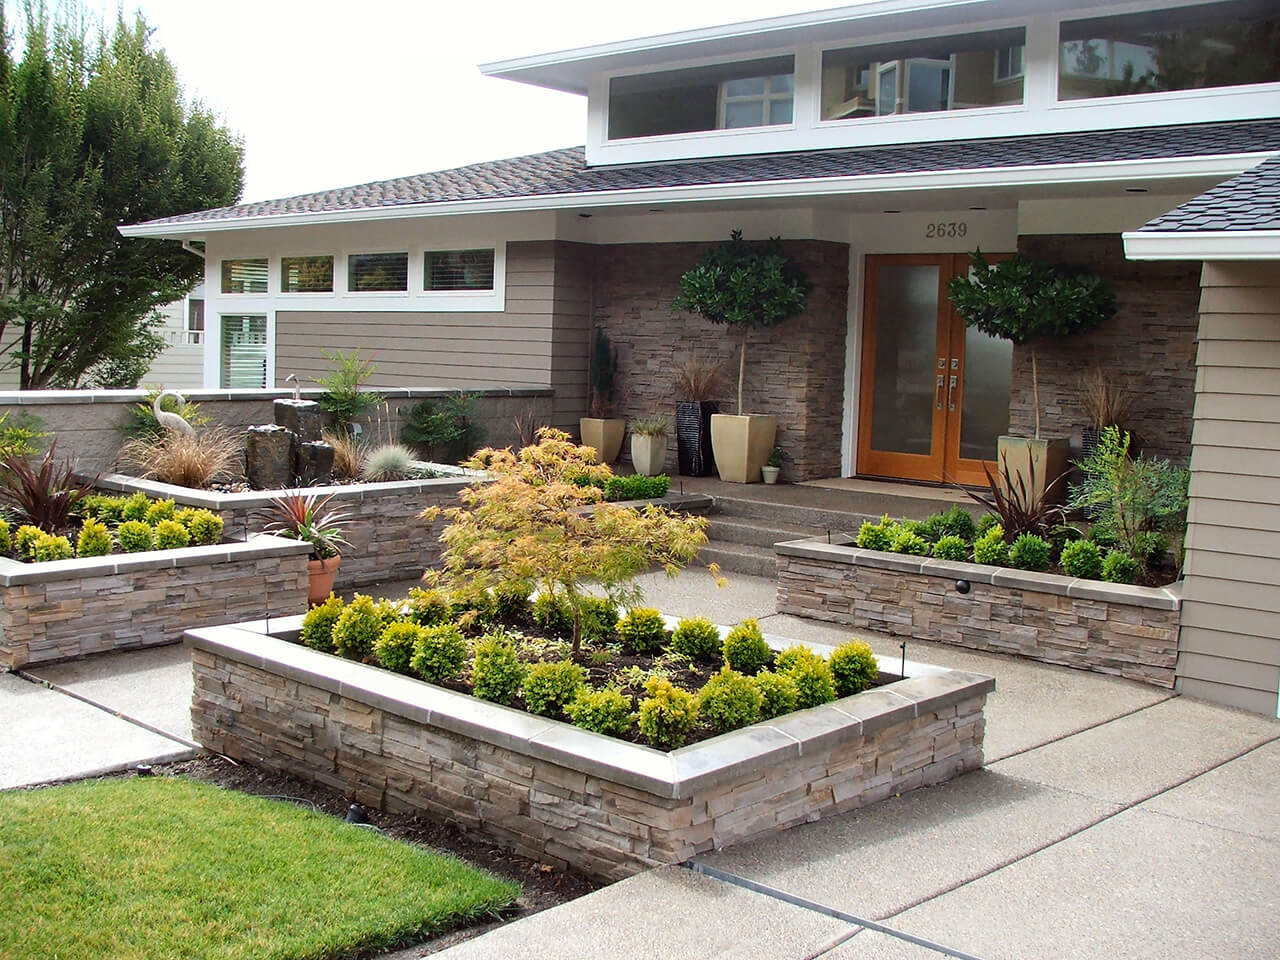 20 brilliant front garden landscaping ideas style motivation for Best front garden ideas